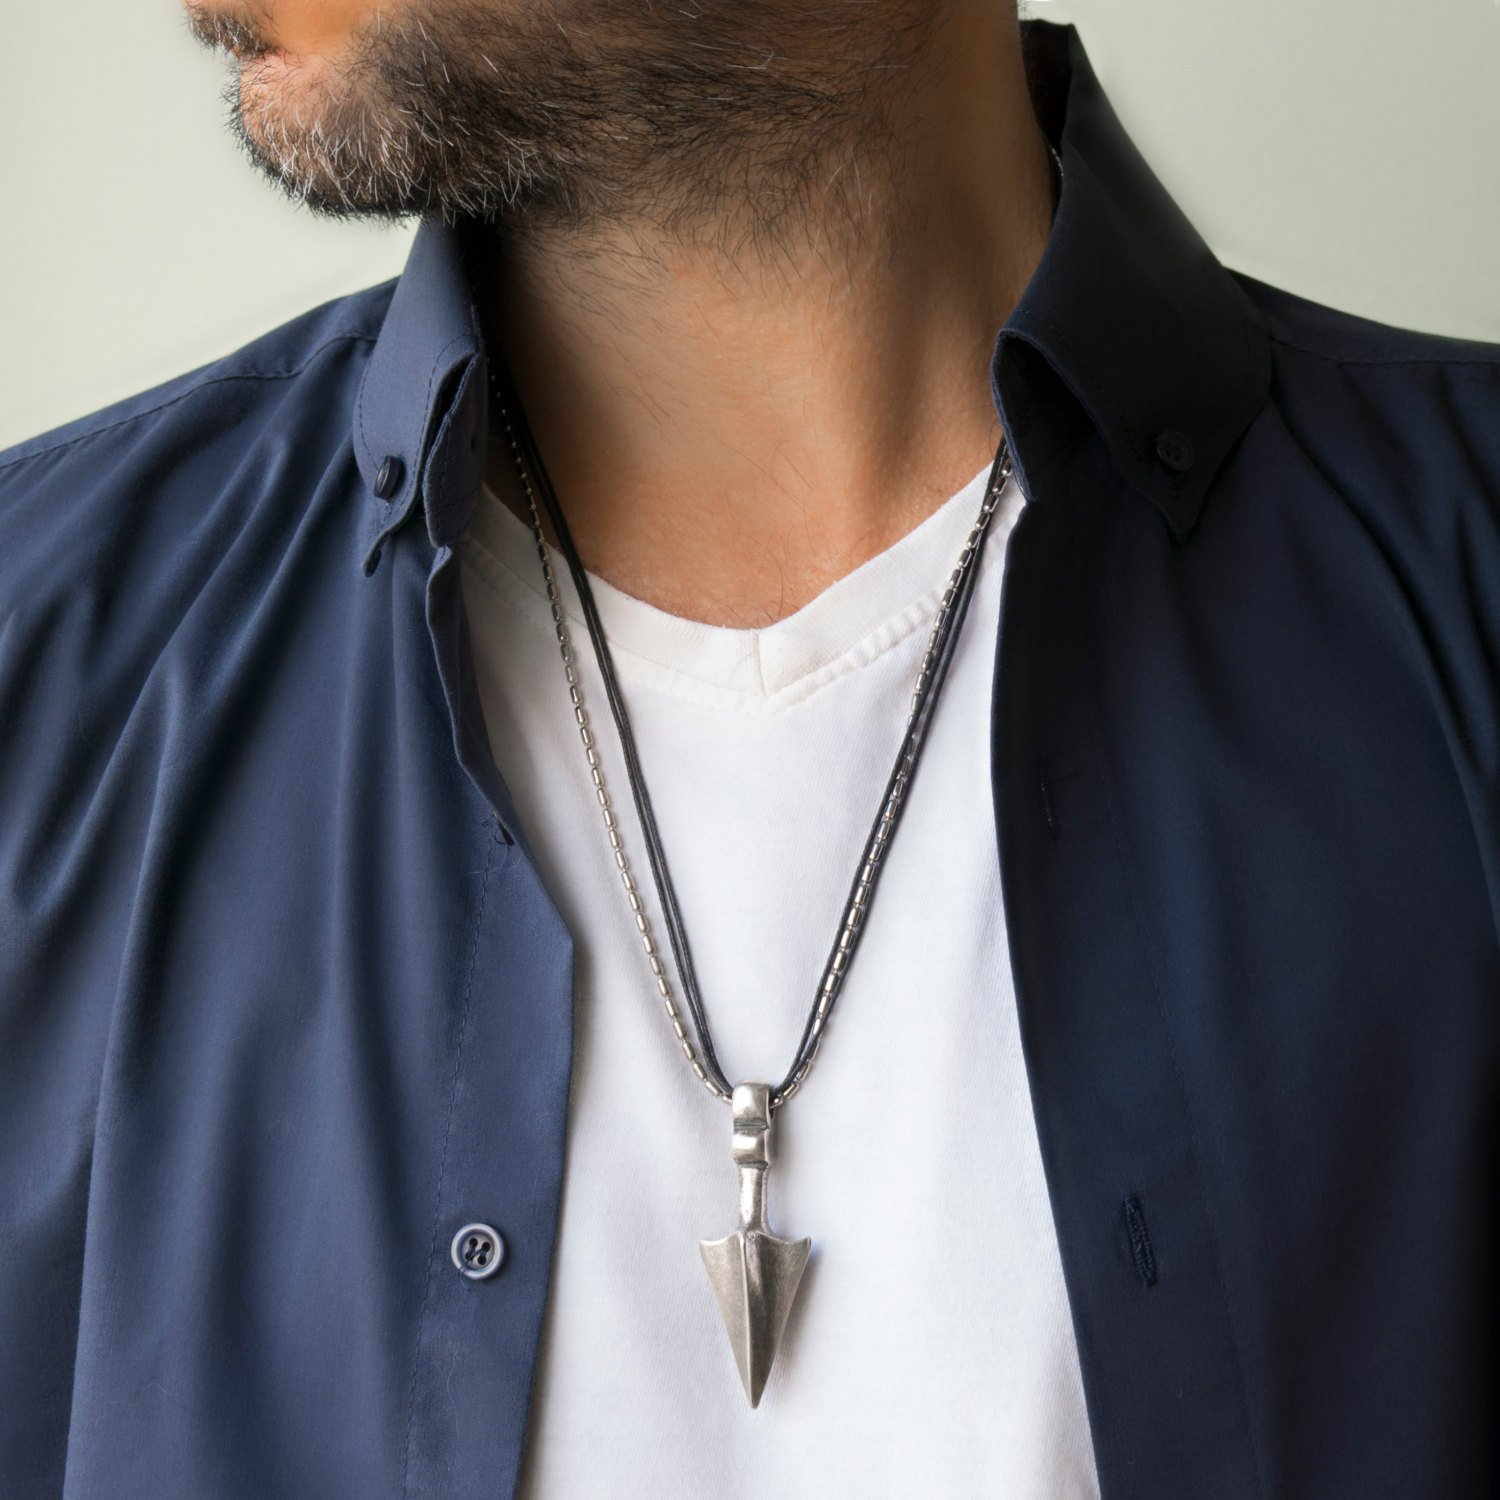 Men's Necklace - Men's Silver Necklace - Men's Vegan Necklace - Men's Jewelry - Men's Gift